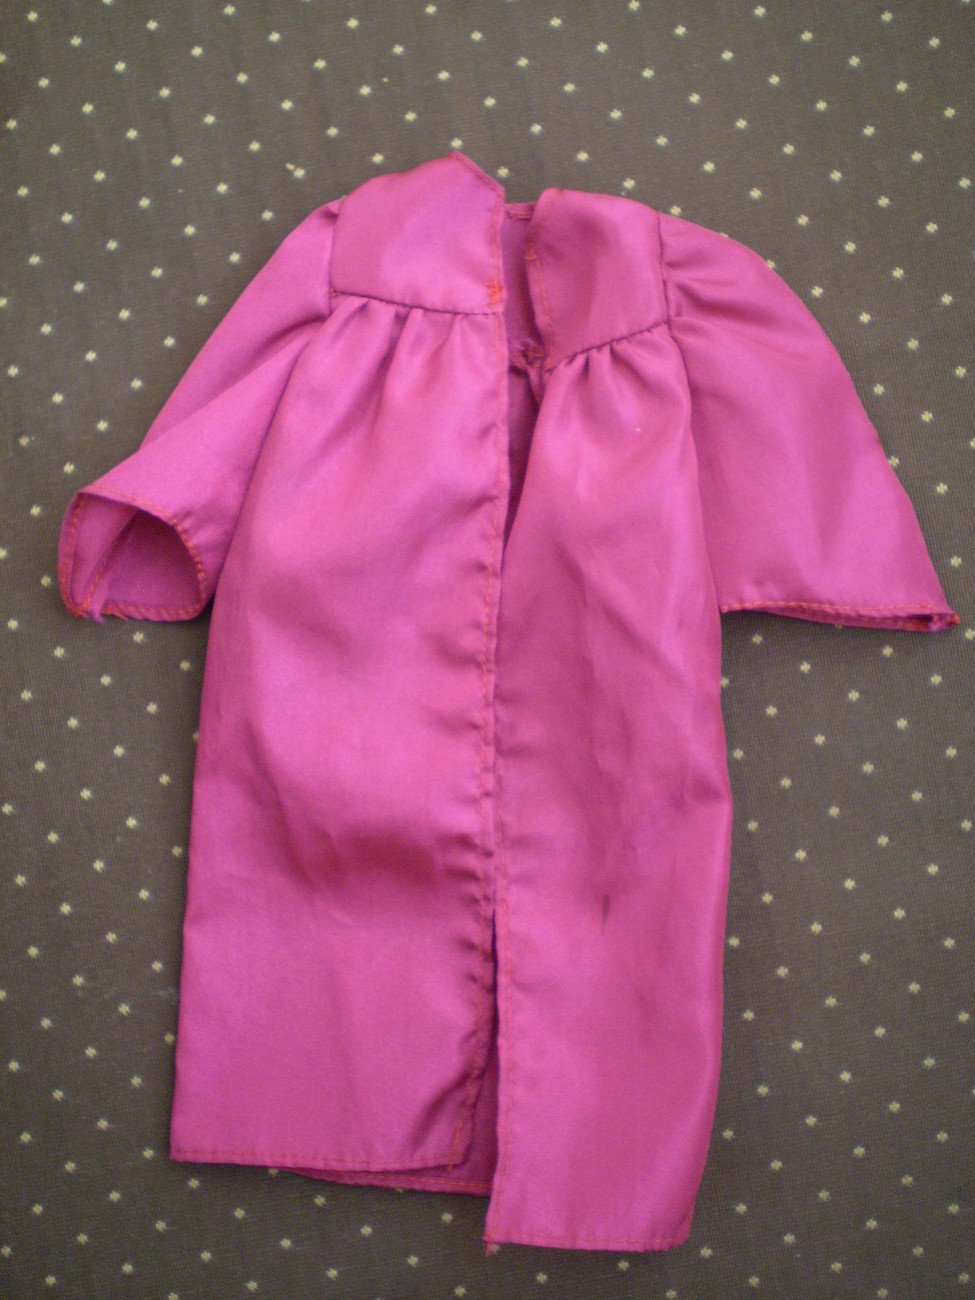 Barbie Graduation Toga Maroon for Doll Gown High School College